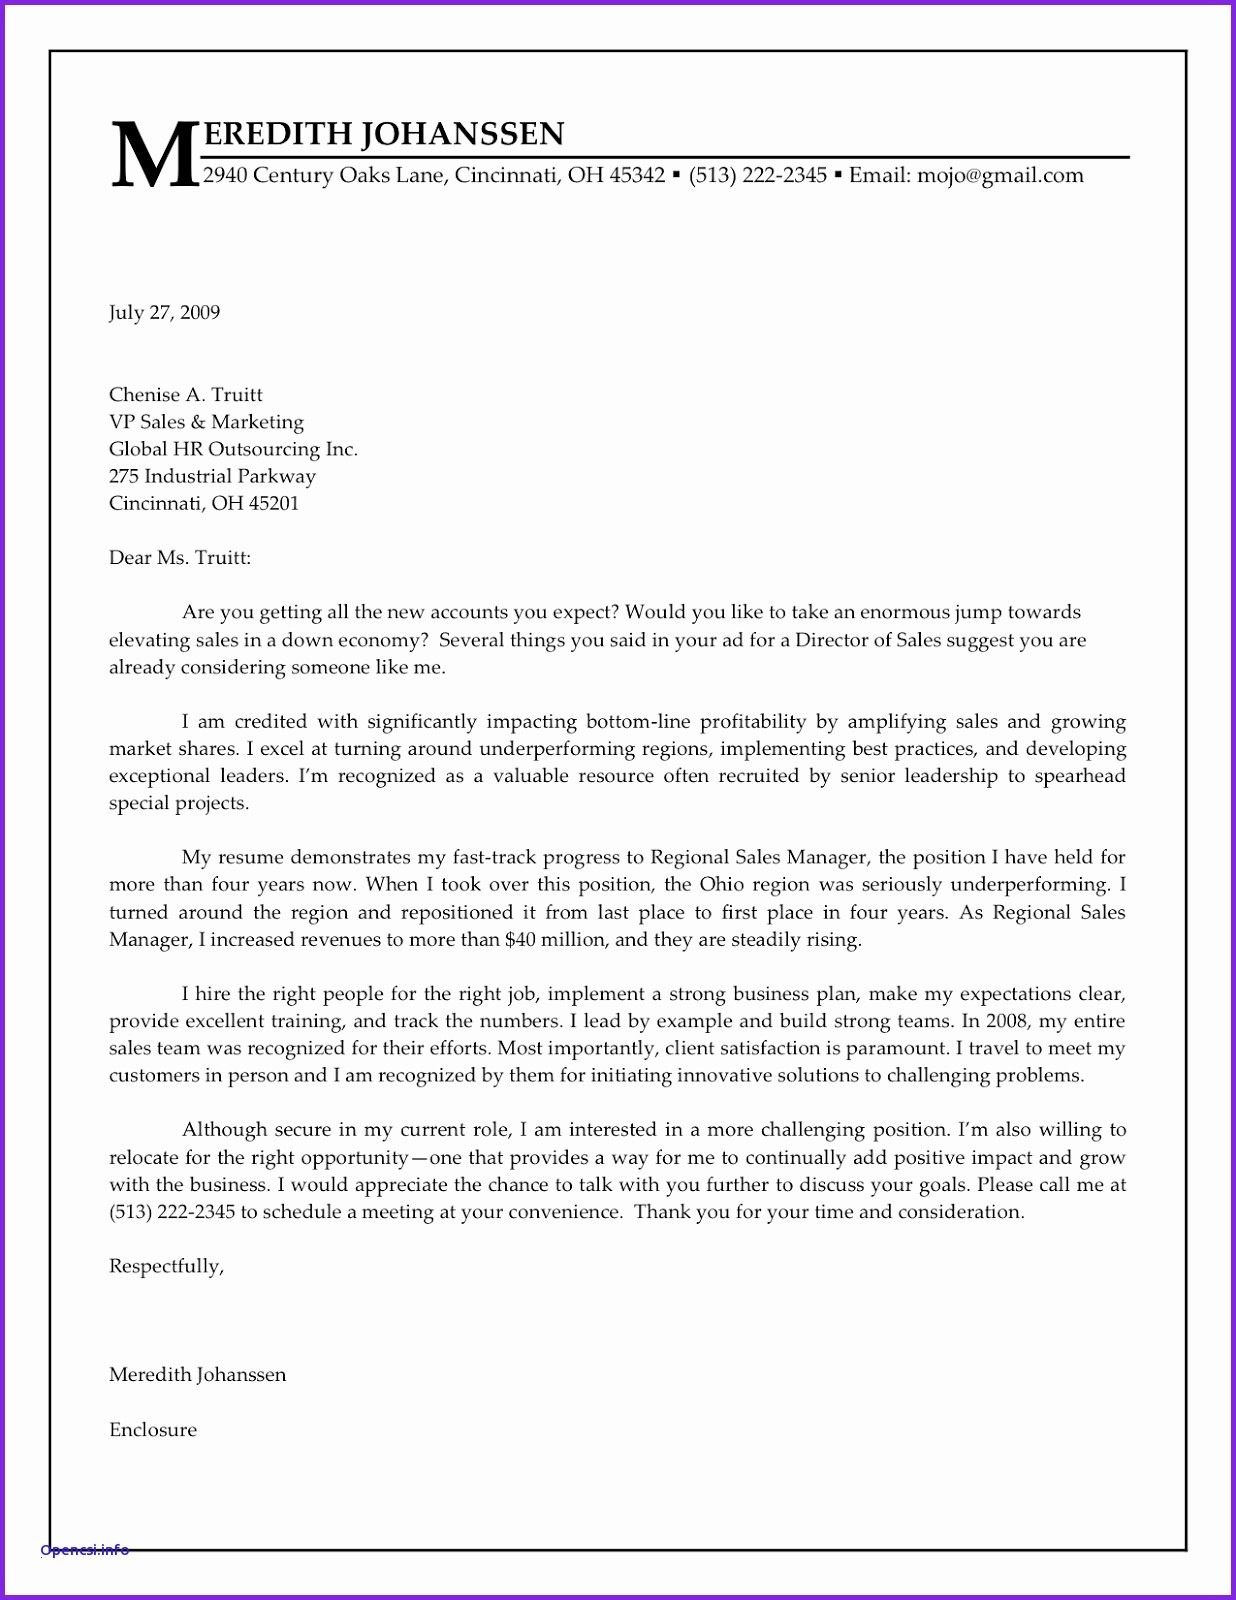 Free Business Letter format Template - Chronological Resume Template Legalsocialmobilitypartnership